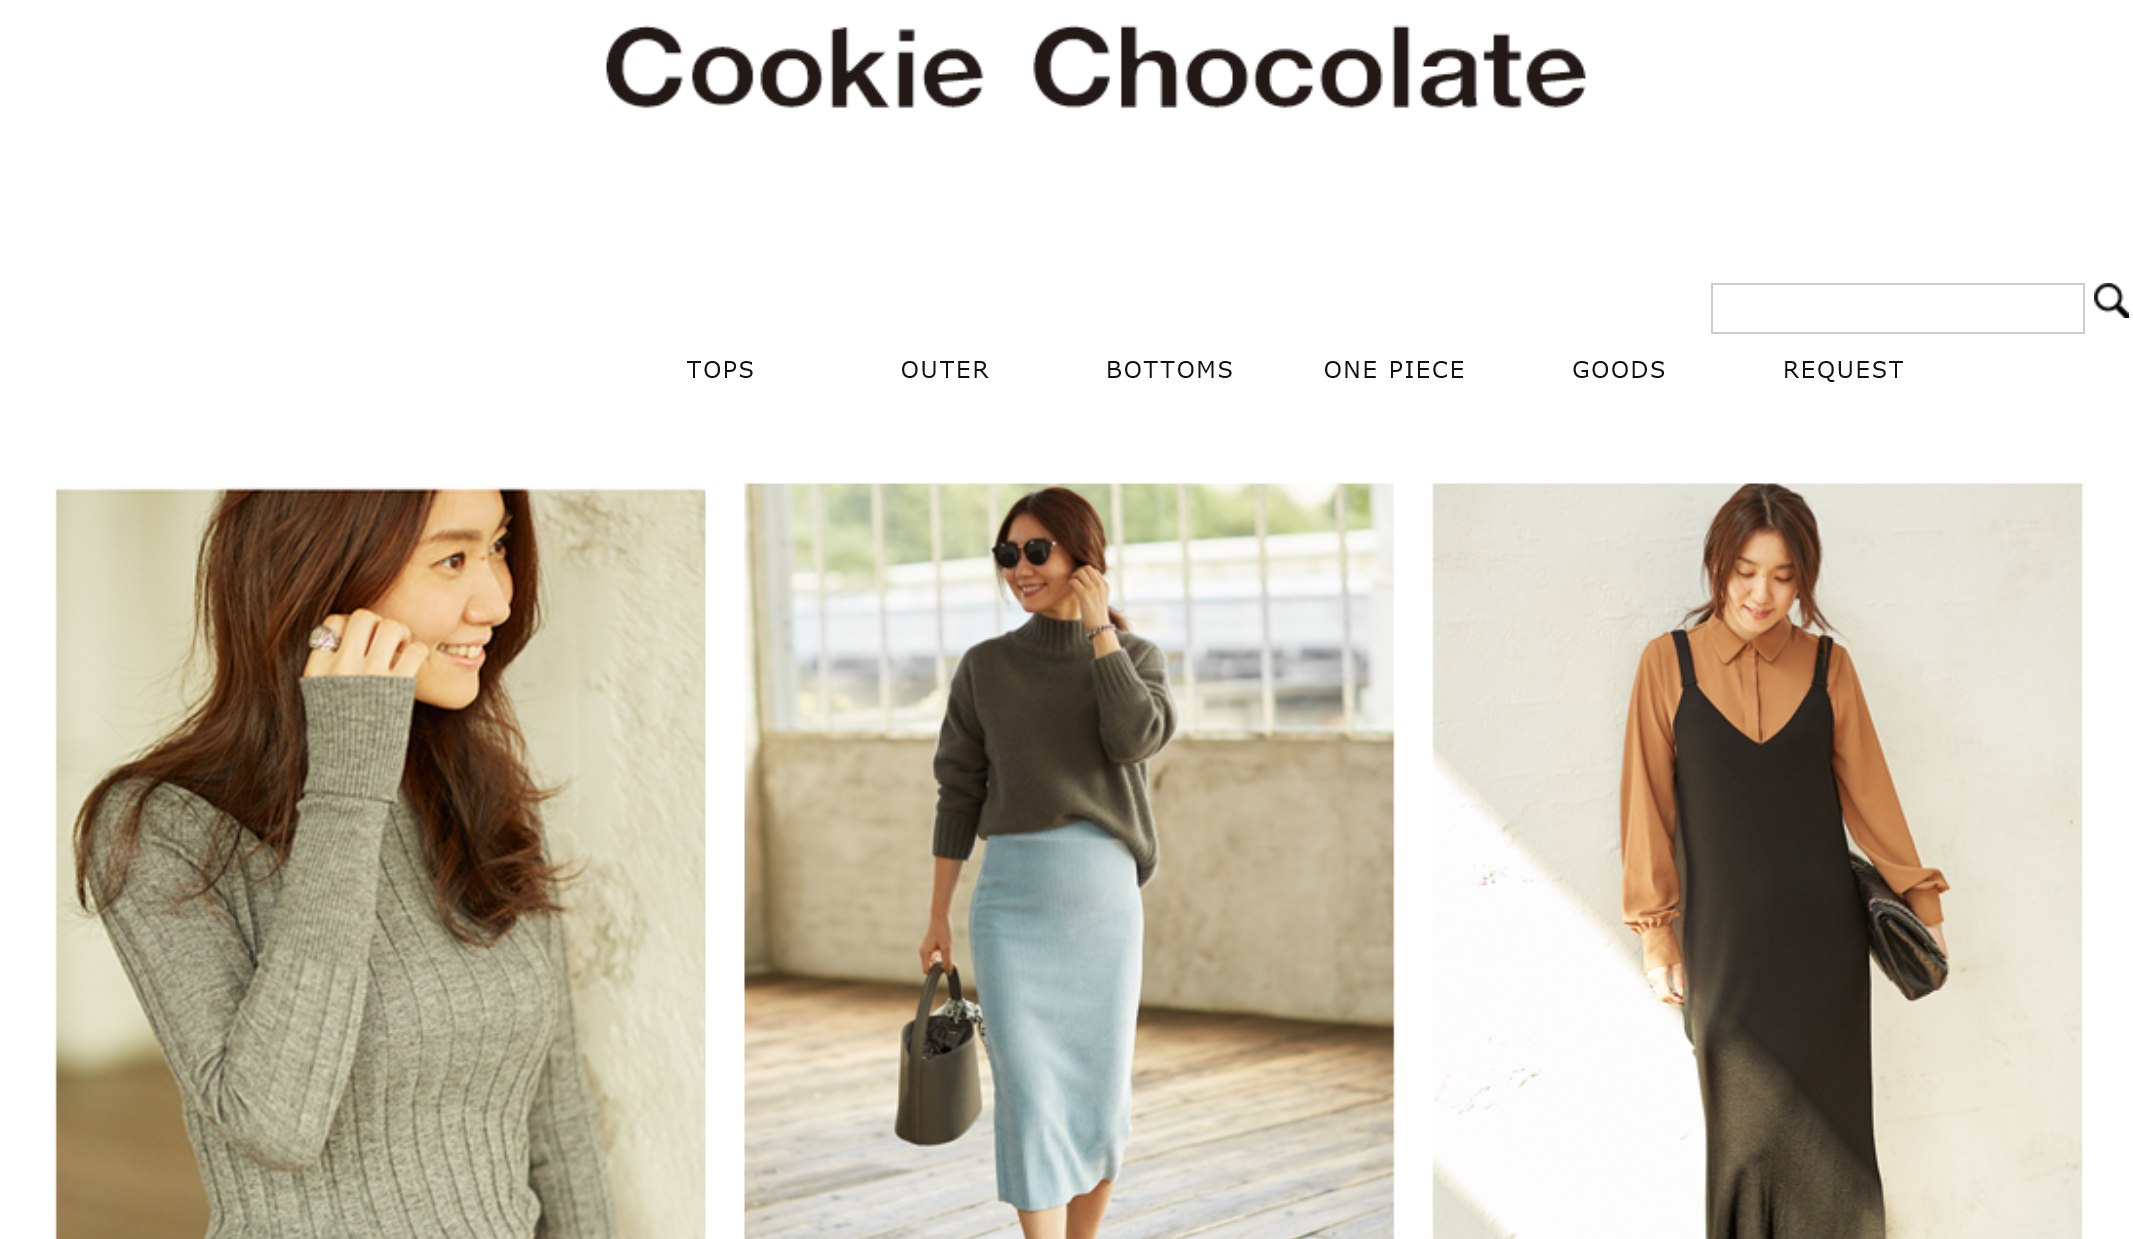 cookiechocolate